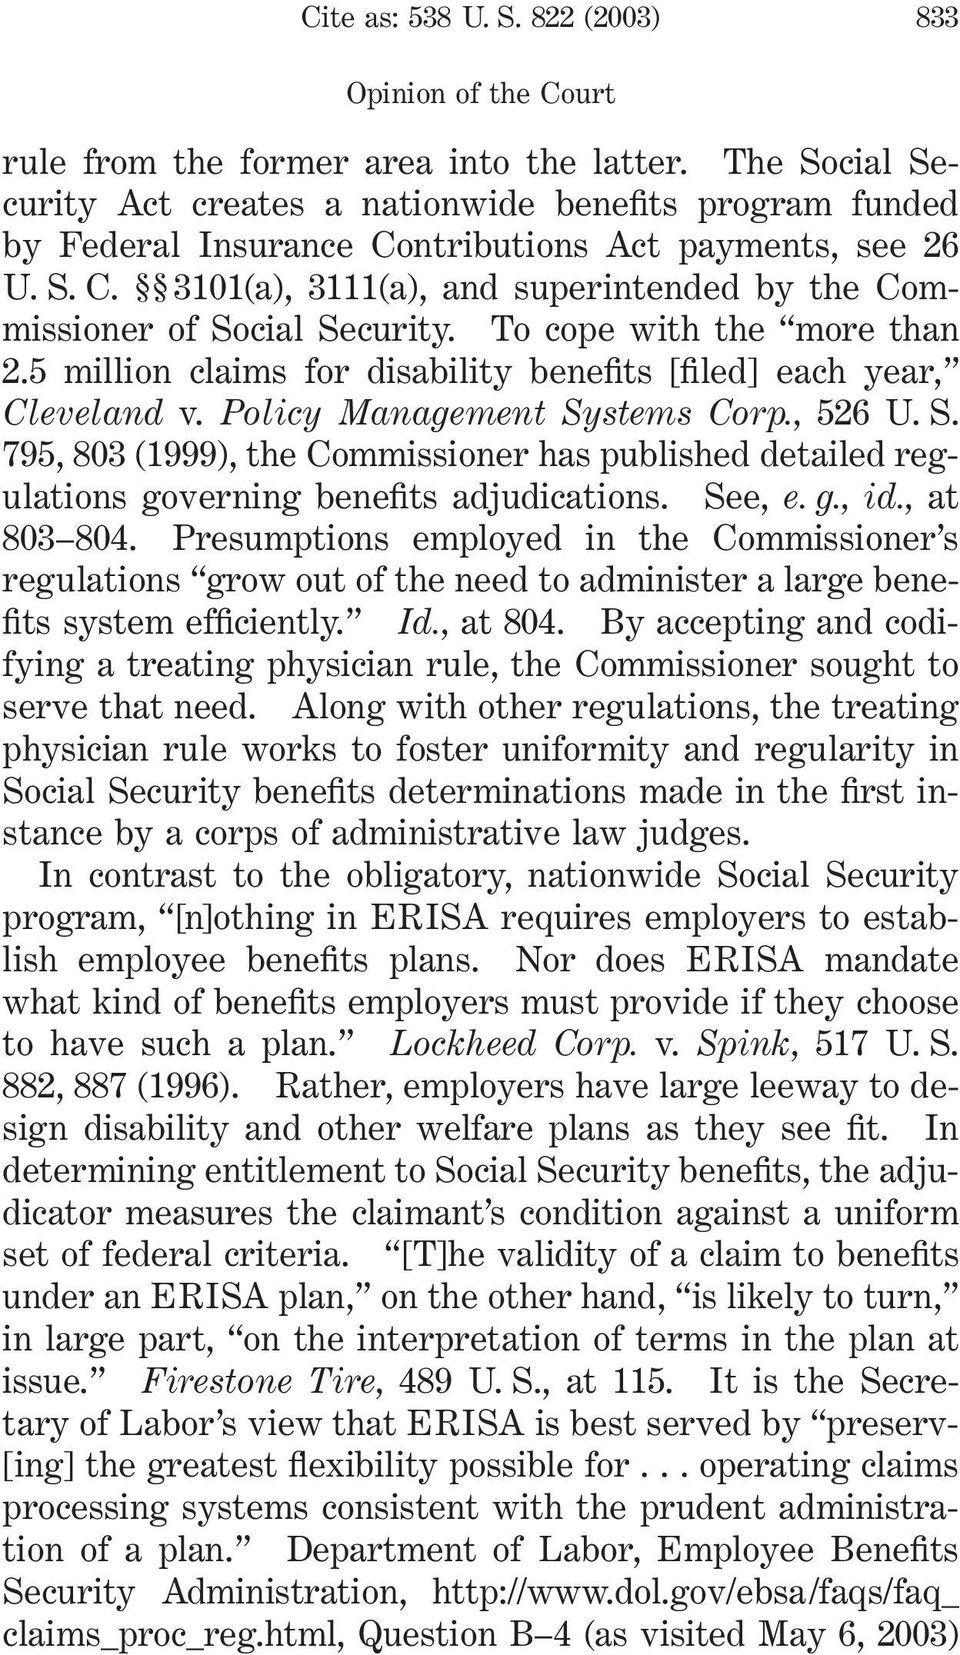 To cope with the more than 2.5 million claims for disability benefits [filed] each year, Cleveland v. Policy Management Sy